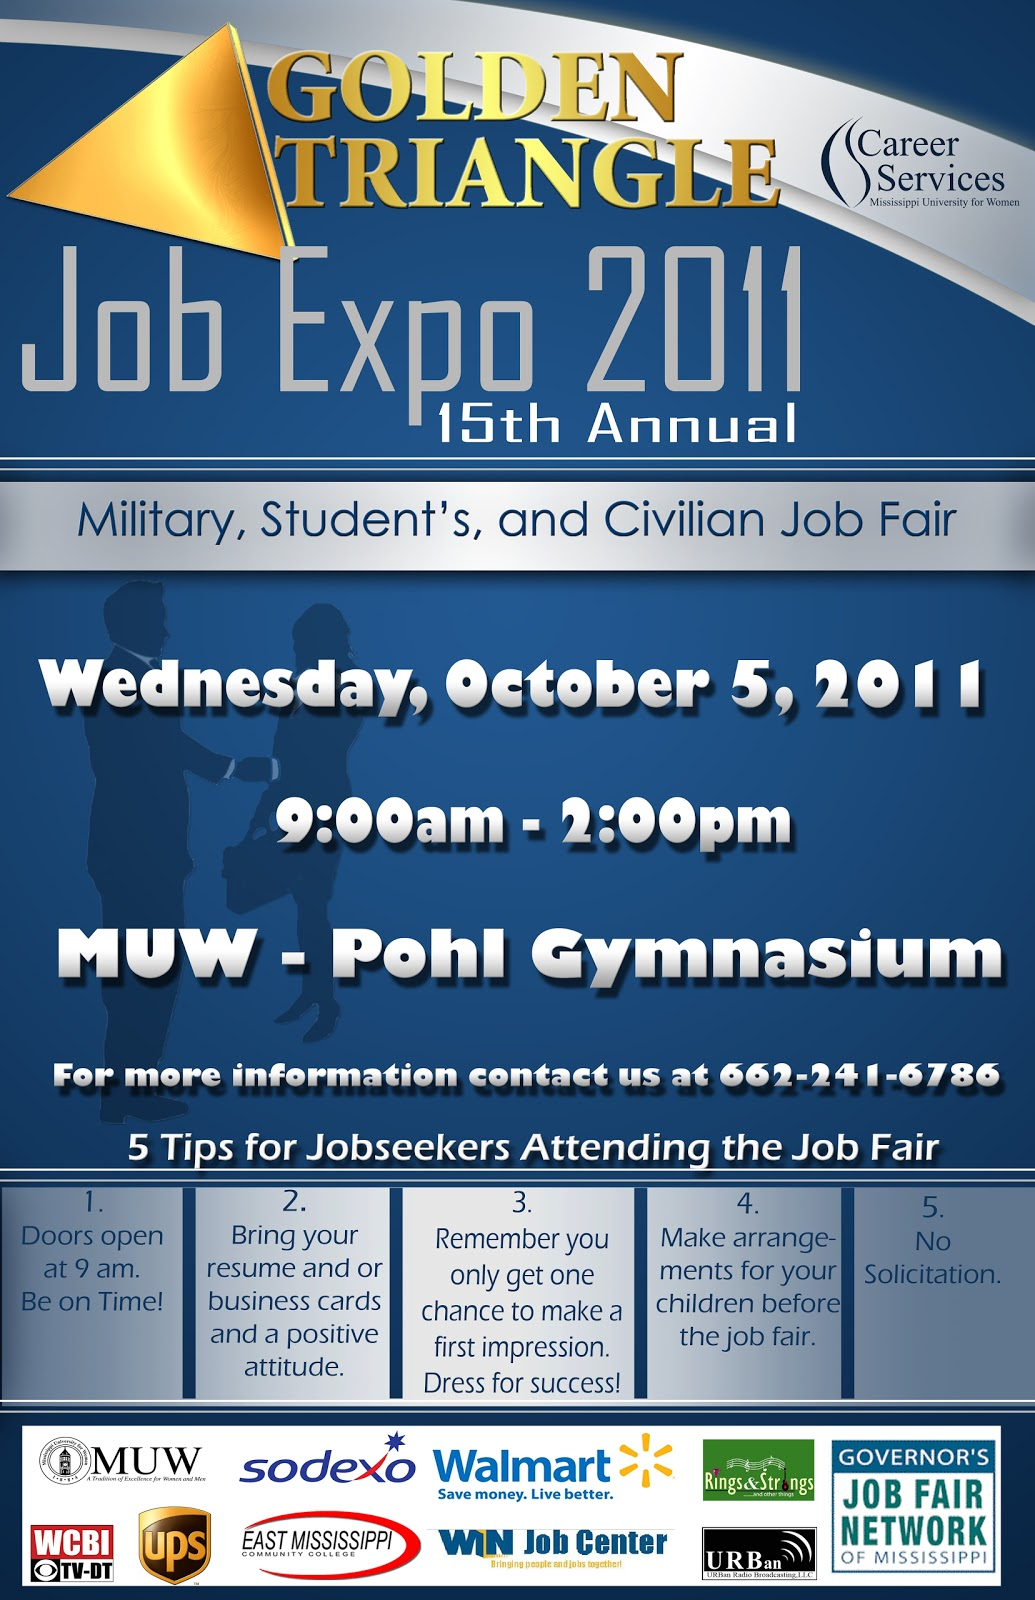 Military civilian hot jobs events and helpful information for golden triangle u miss women job expo 2011 oct 5 1betcityfo Gallery